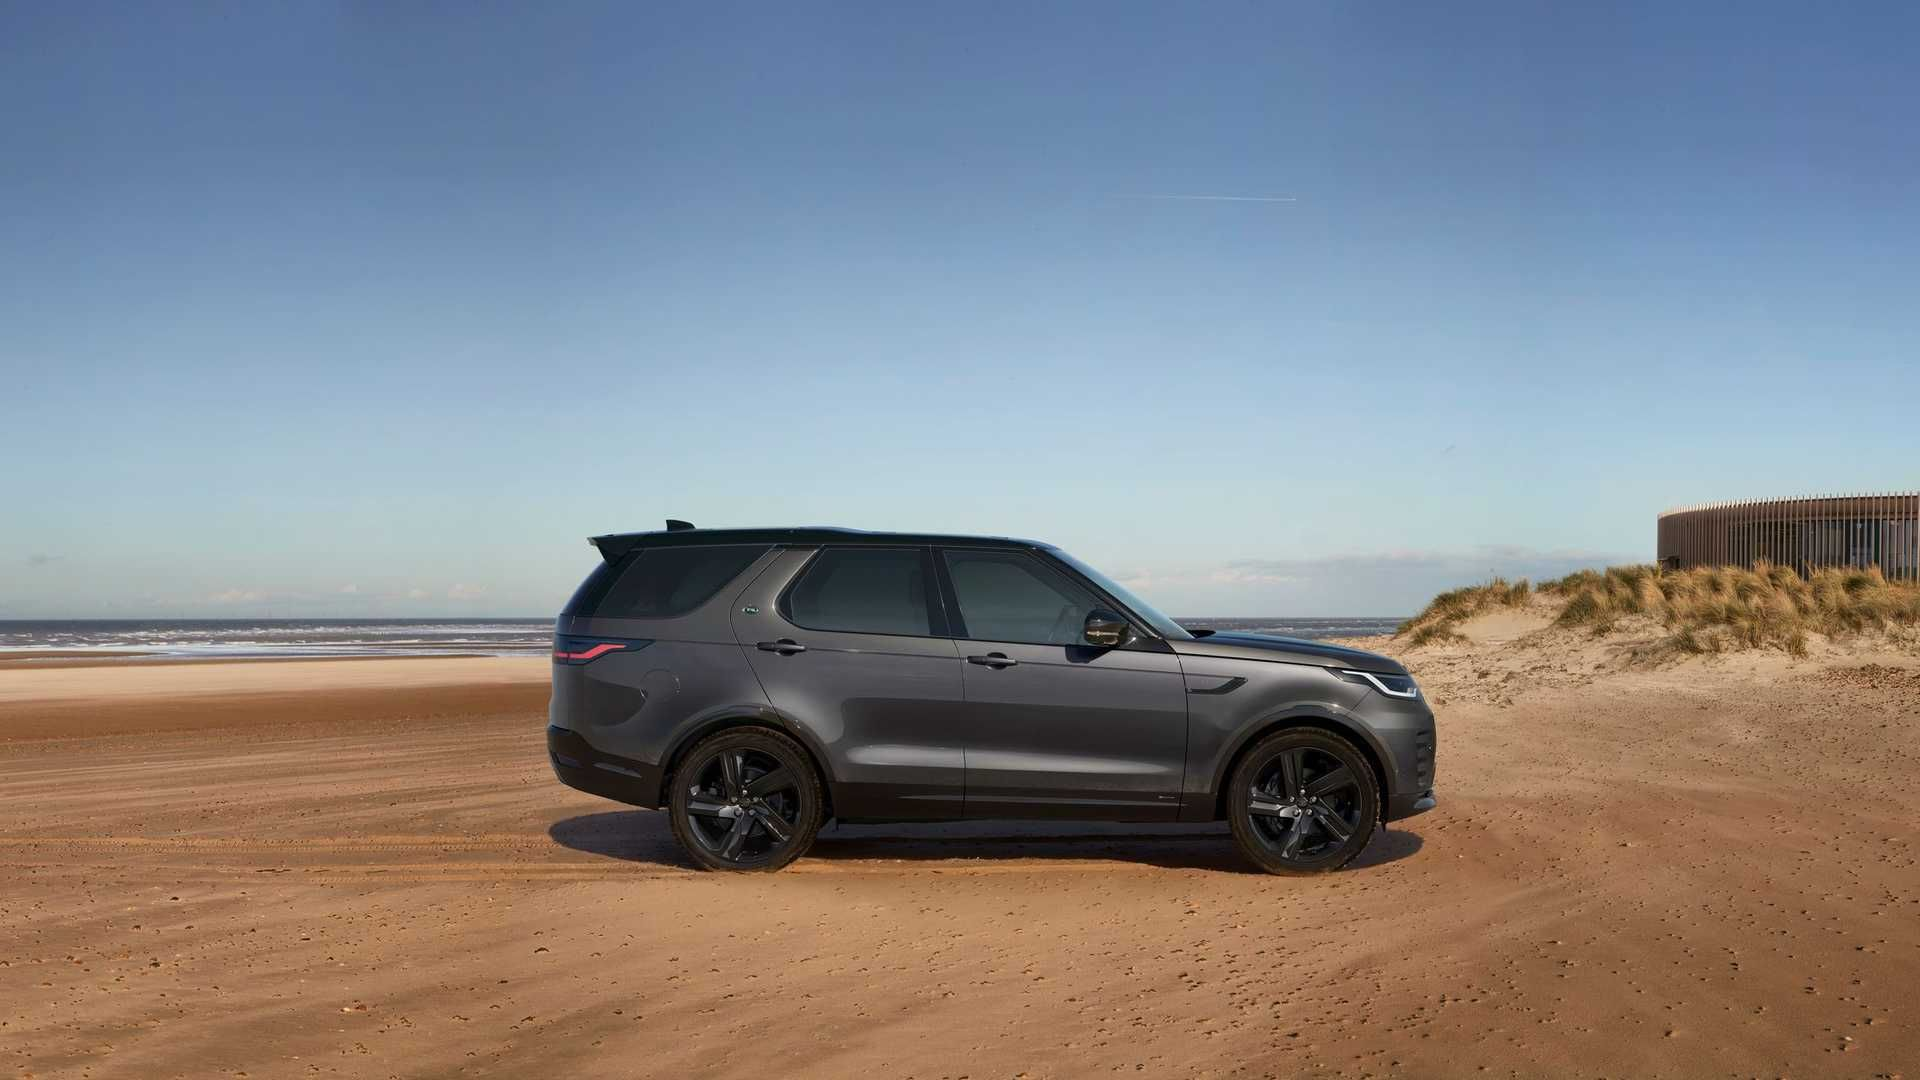 2021-Land-Rover-Discovery-17